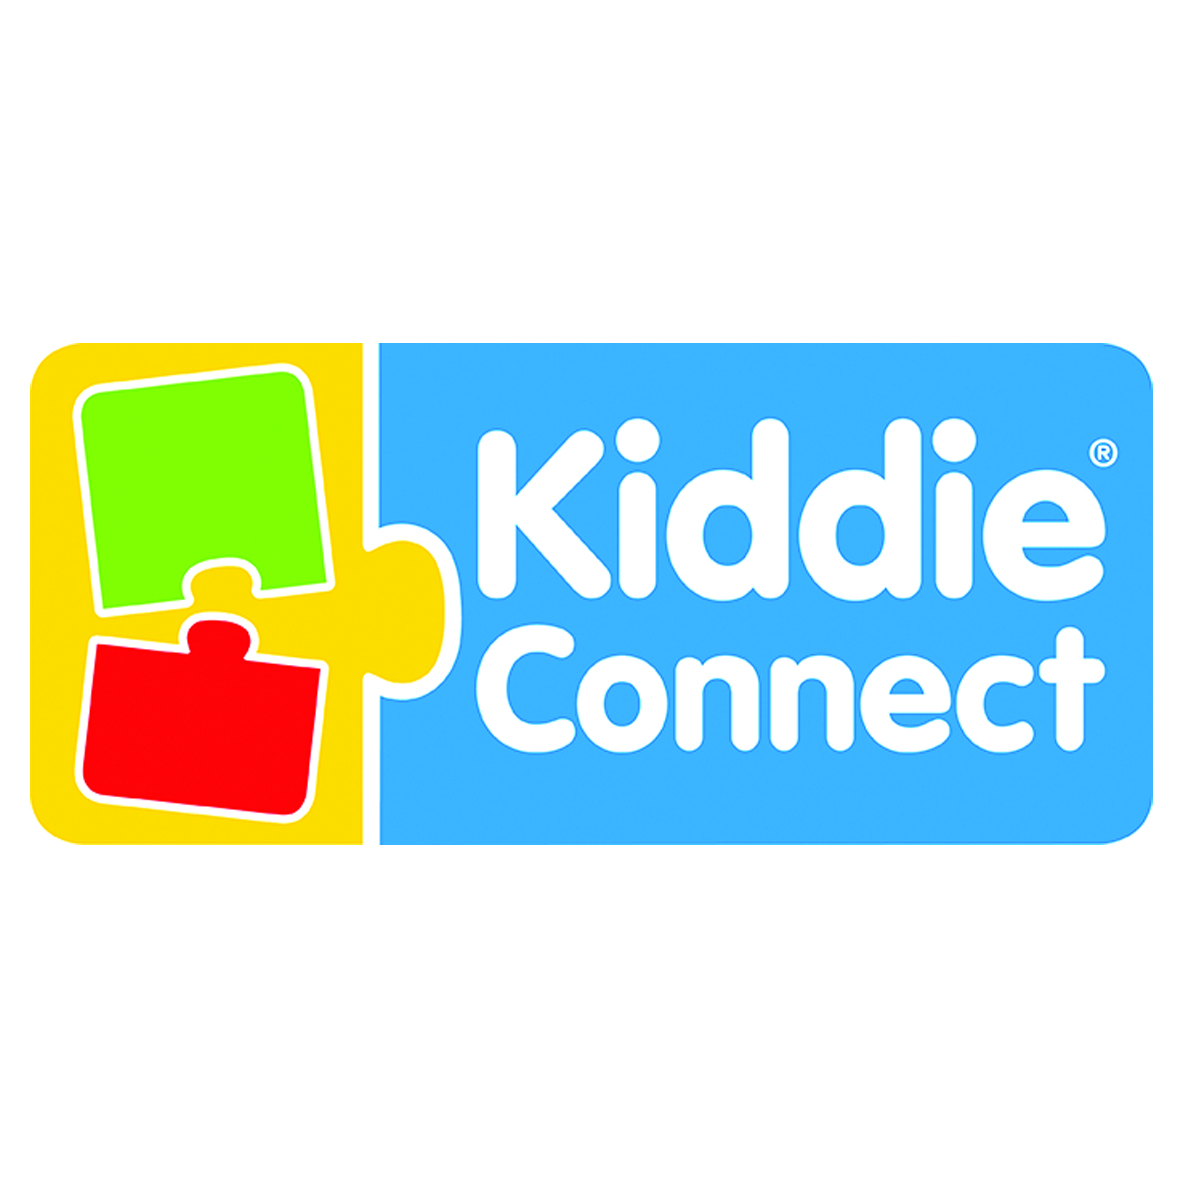 Kaleidoscope Kiddie Connect